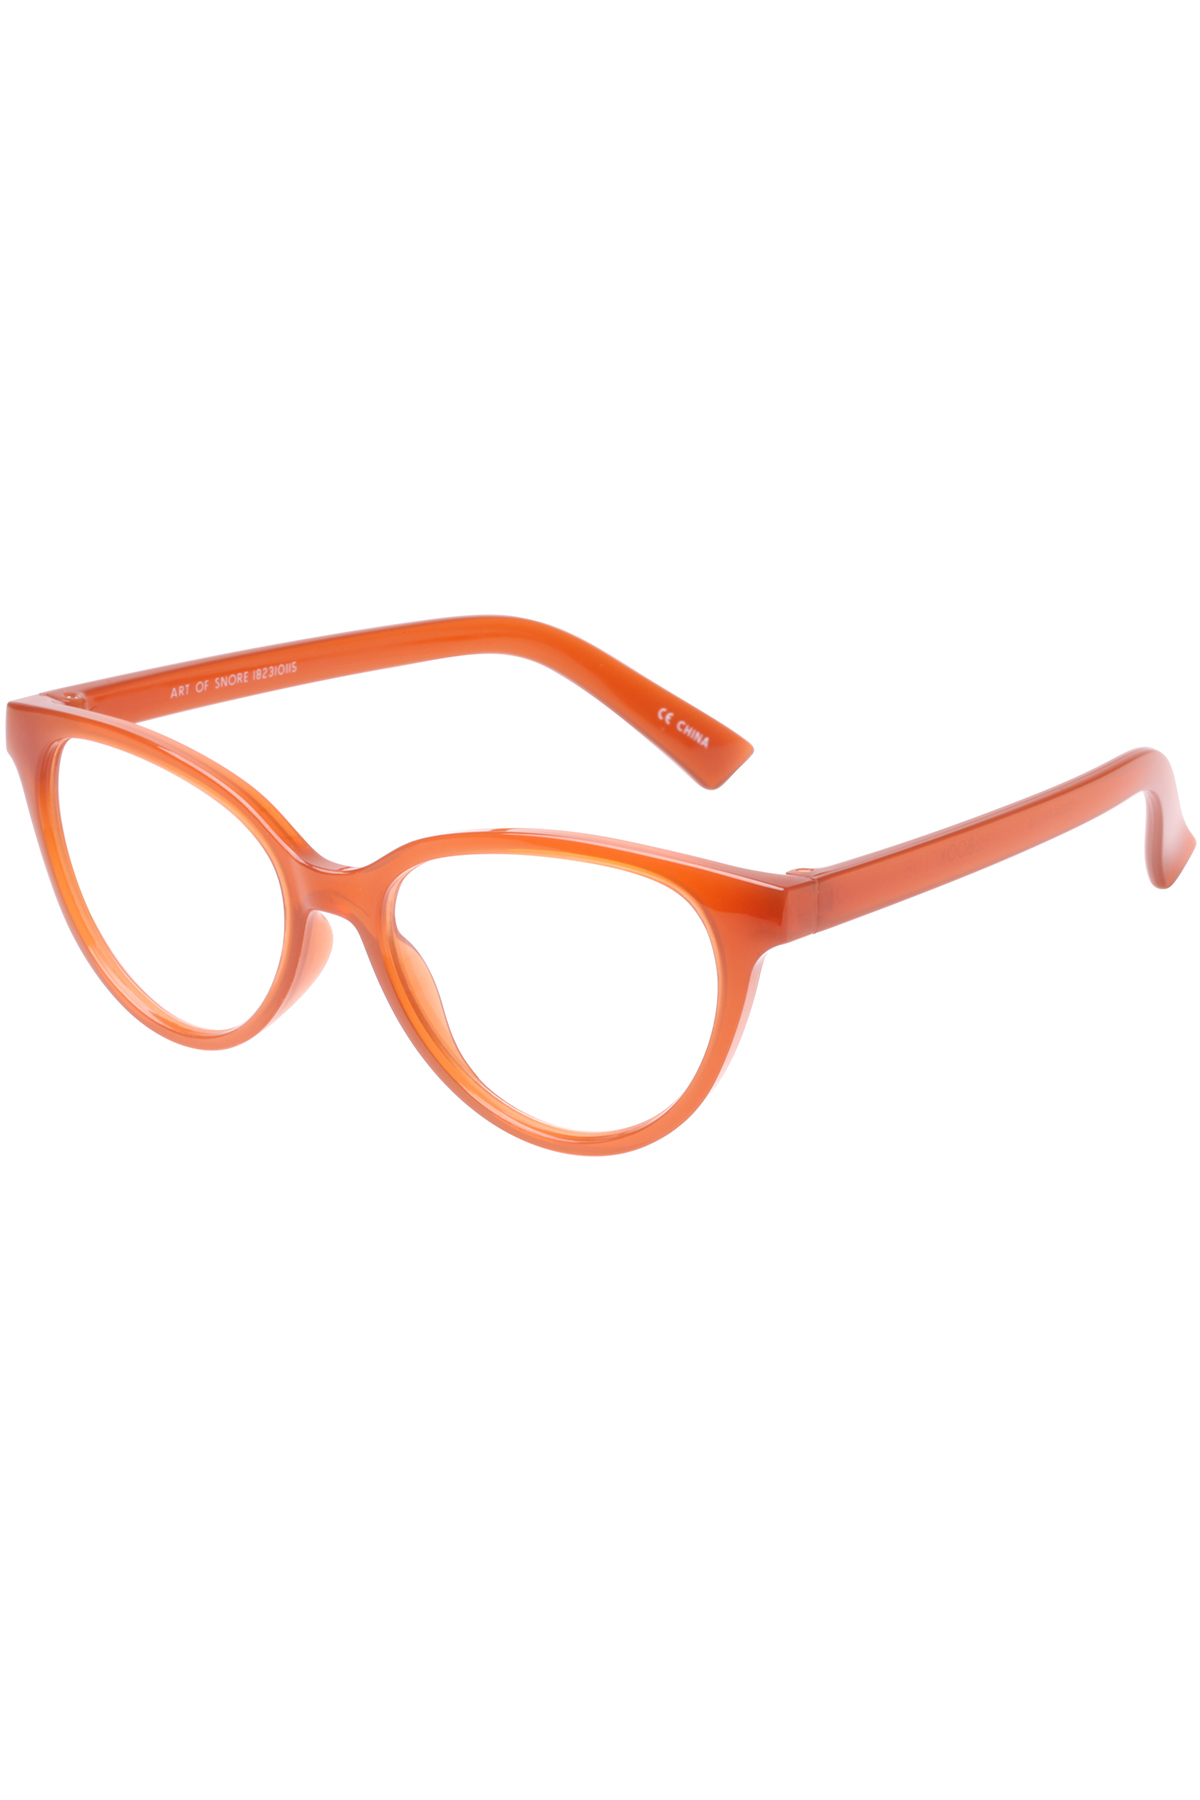 The Art of Snore Reading Glasses (+2.5 Strength) - Saffron 1